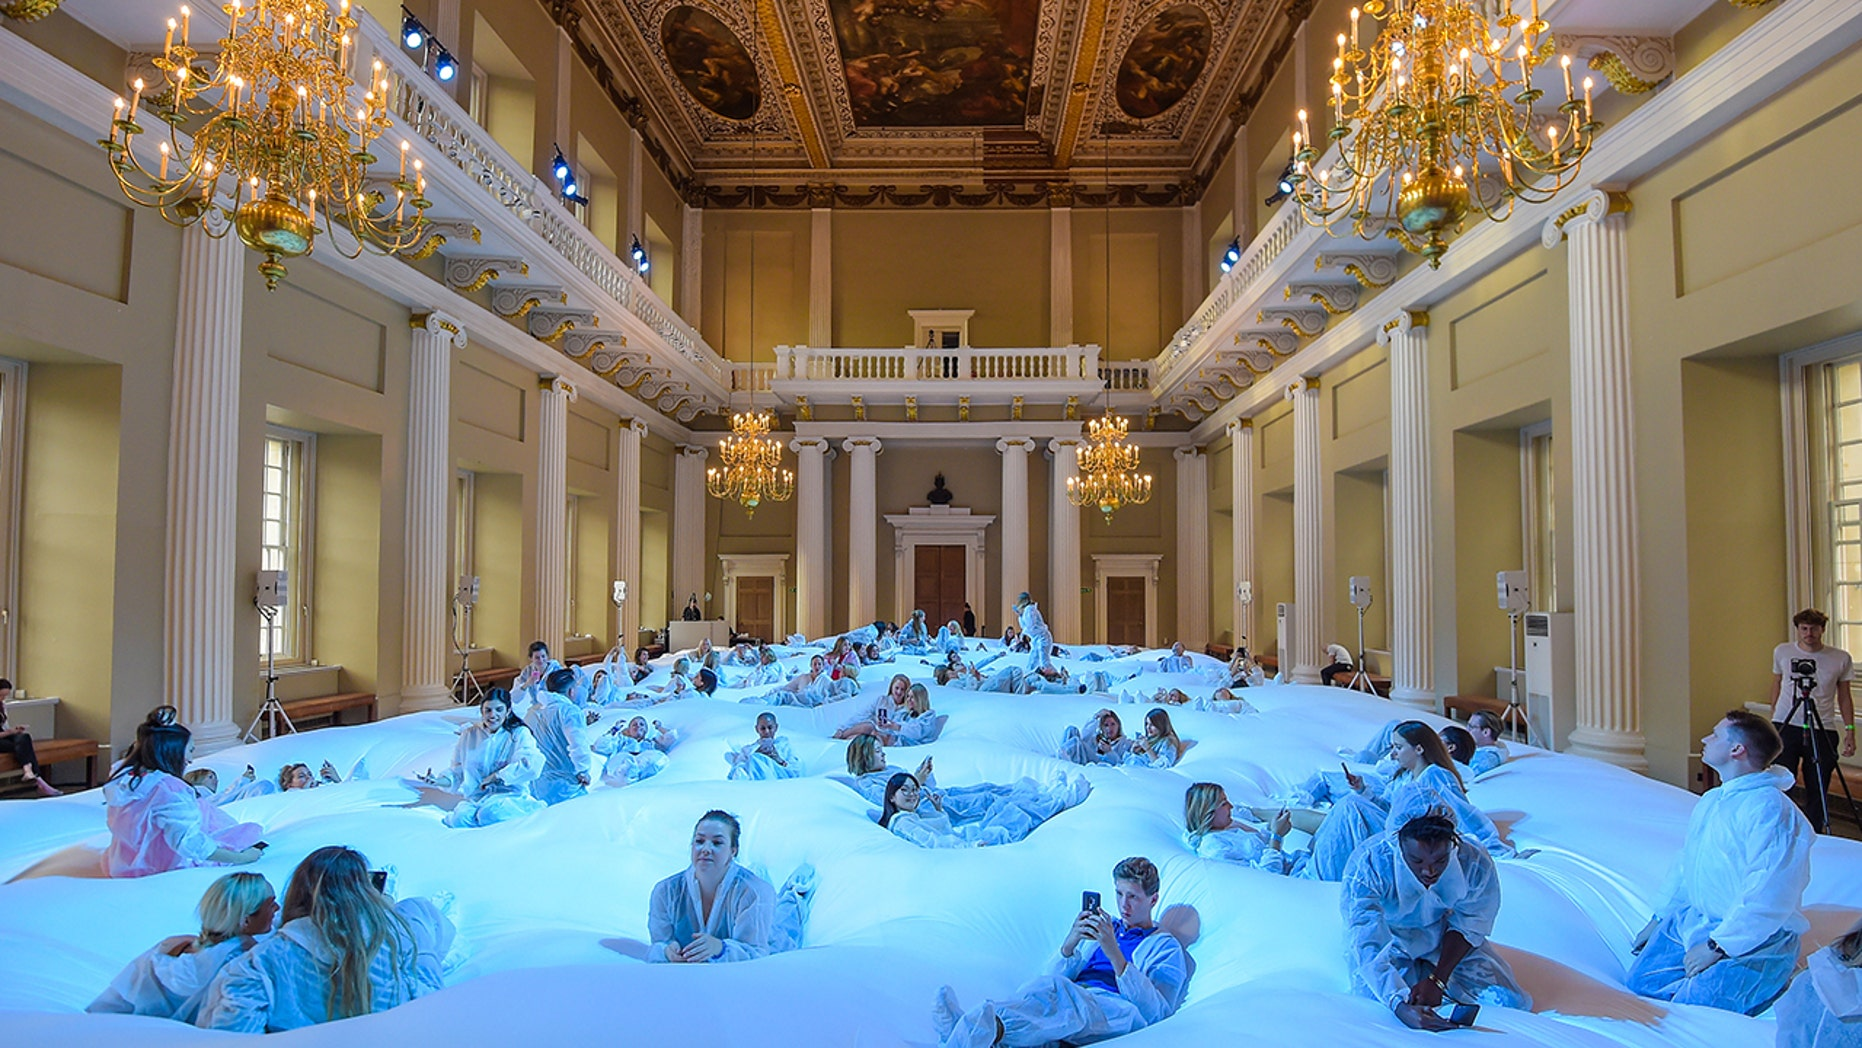 Designer Anya Hindmarch intended the installation as a space for people to relax.